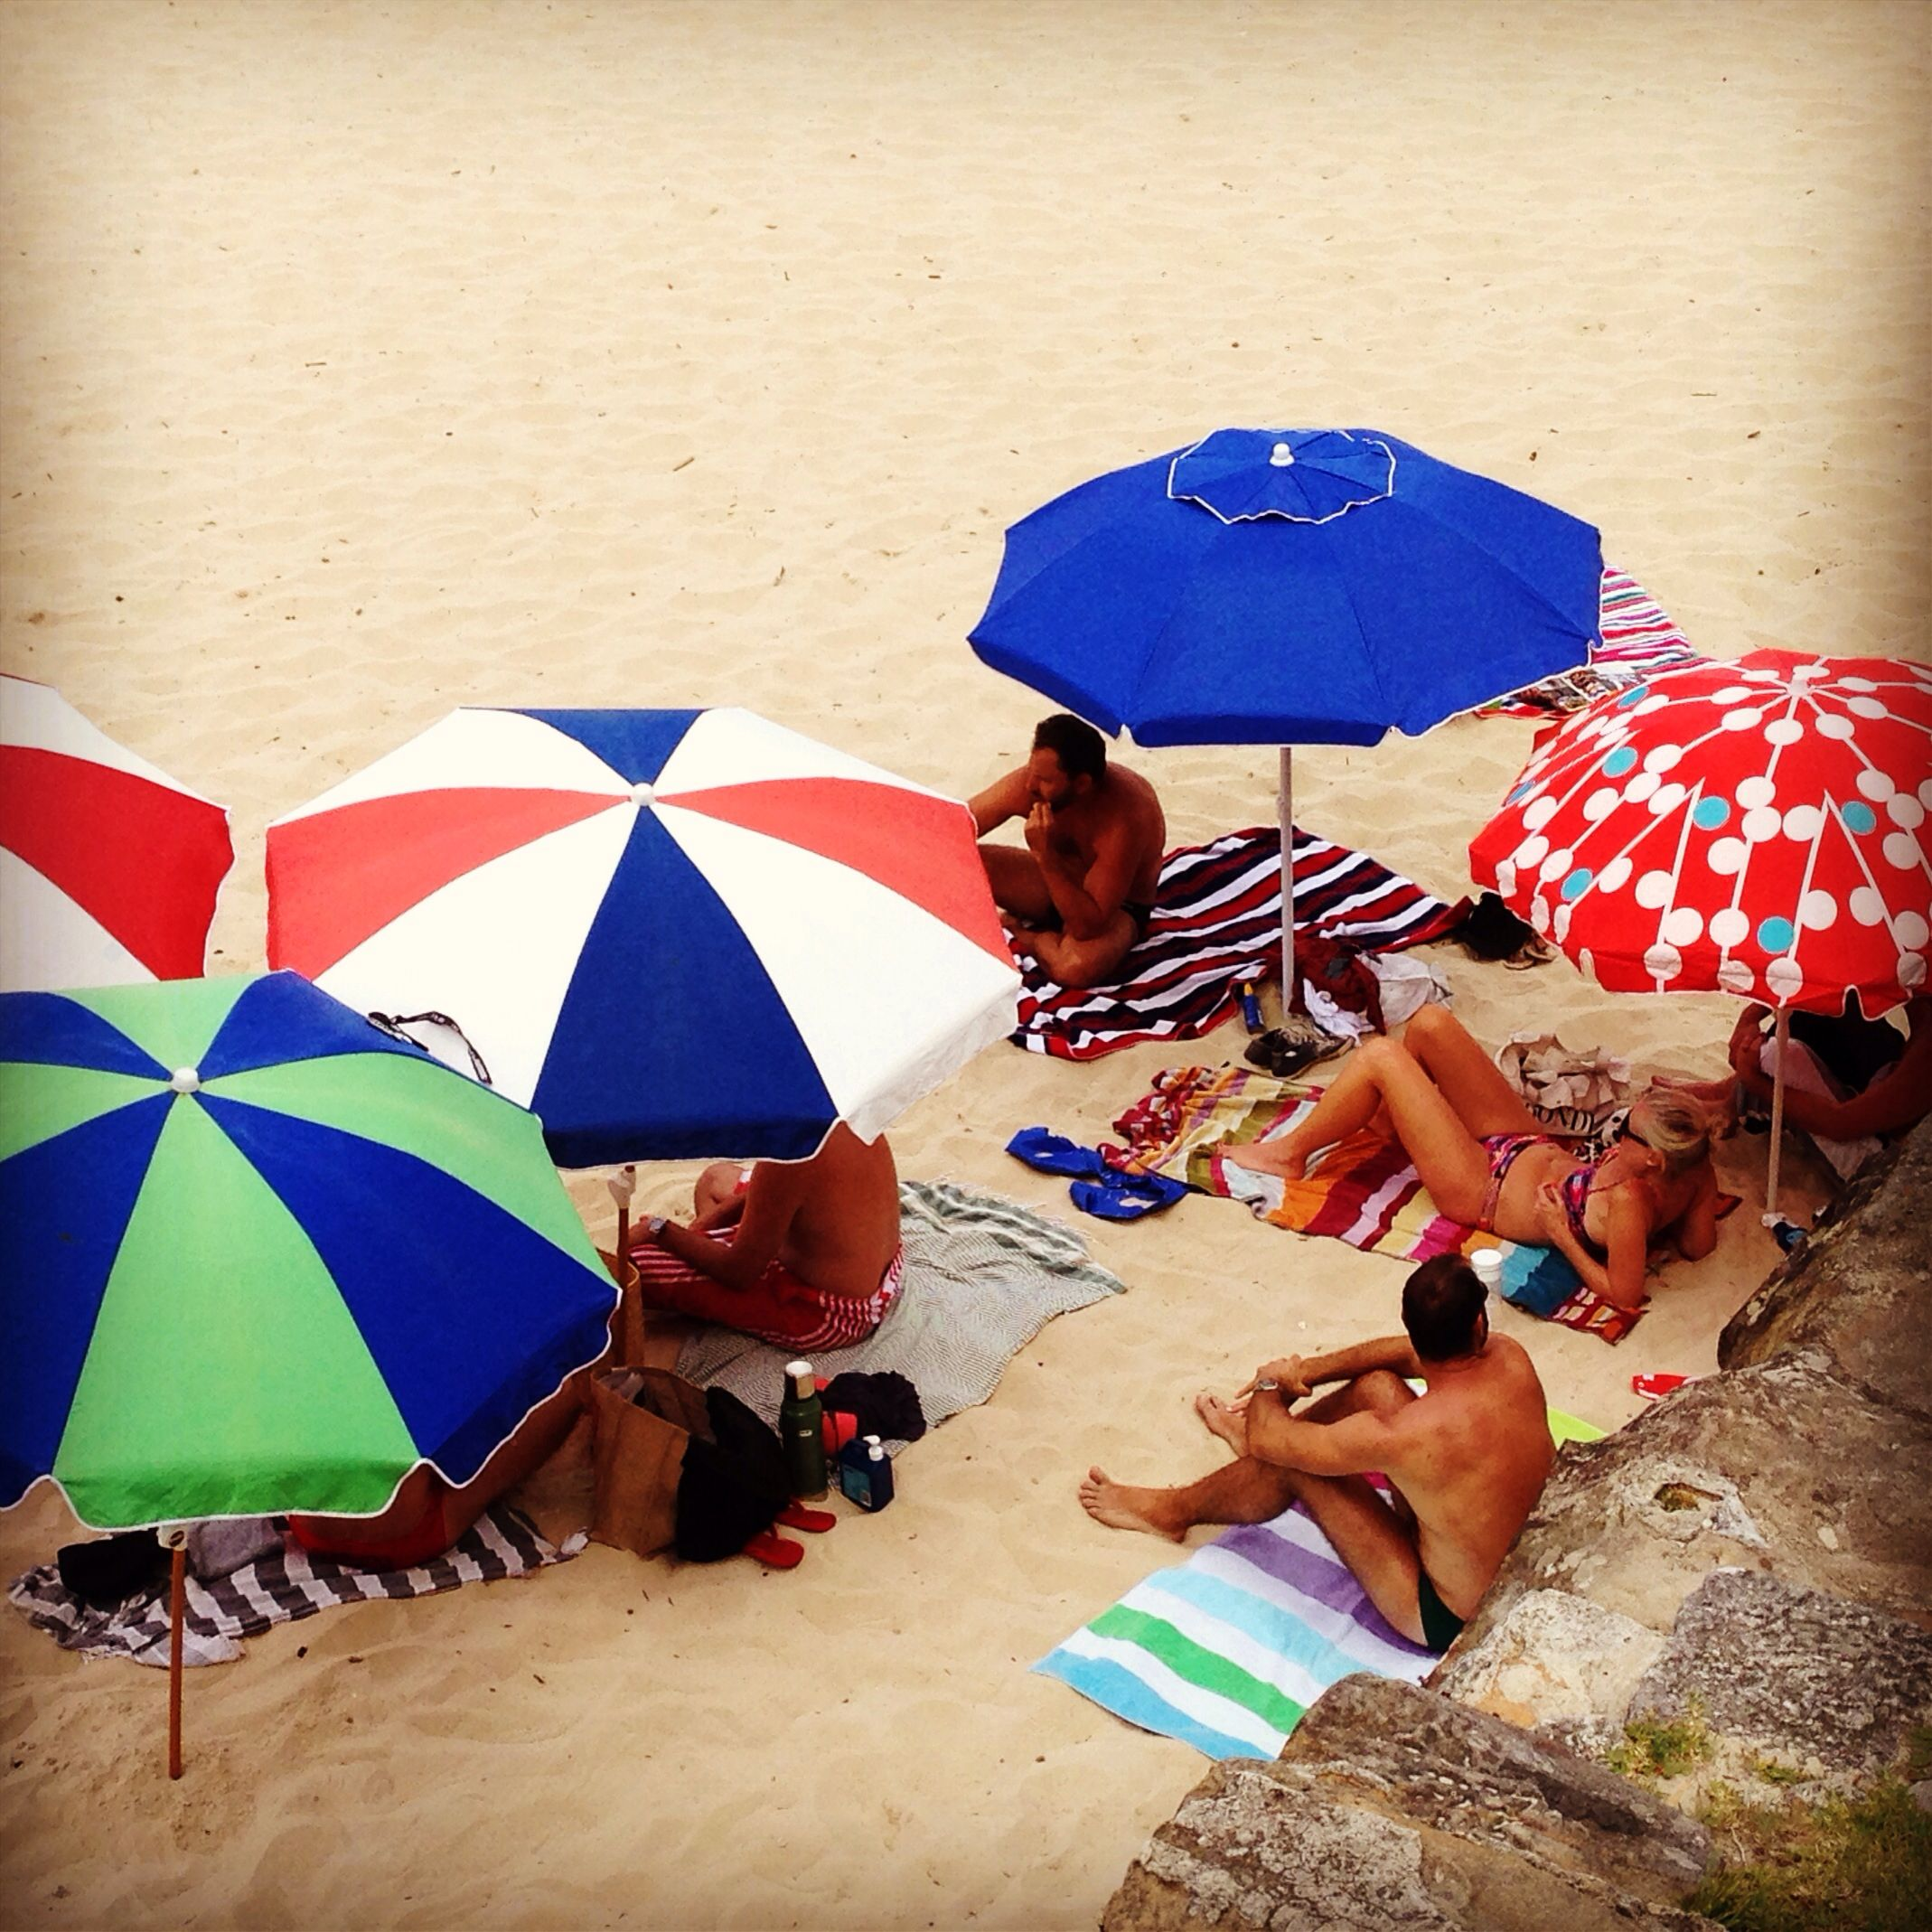 Beach umbrellas, Bondi Beach umbrella, Umbrella, Beach